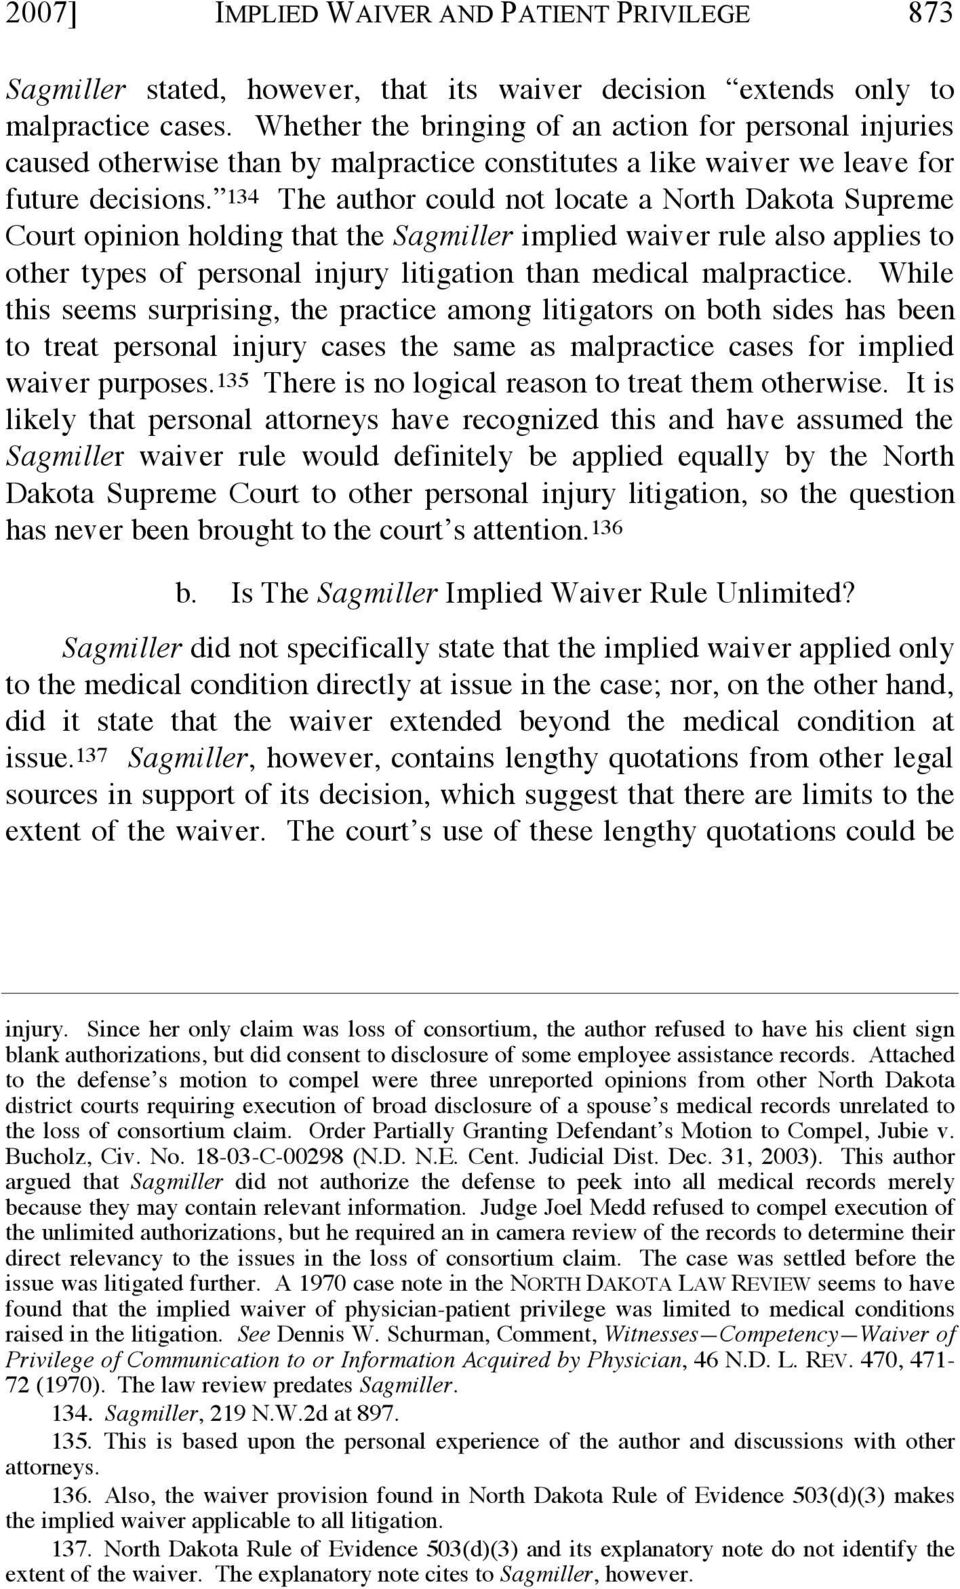 134 The author could not locate a North Dakota Supreme Court opinion holding that the Sagmiller implied waiver rule also applies to other types of personal injury litigation than medical malpractice.